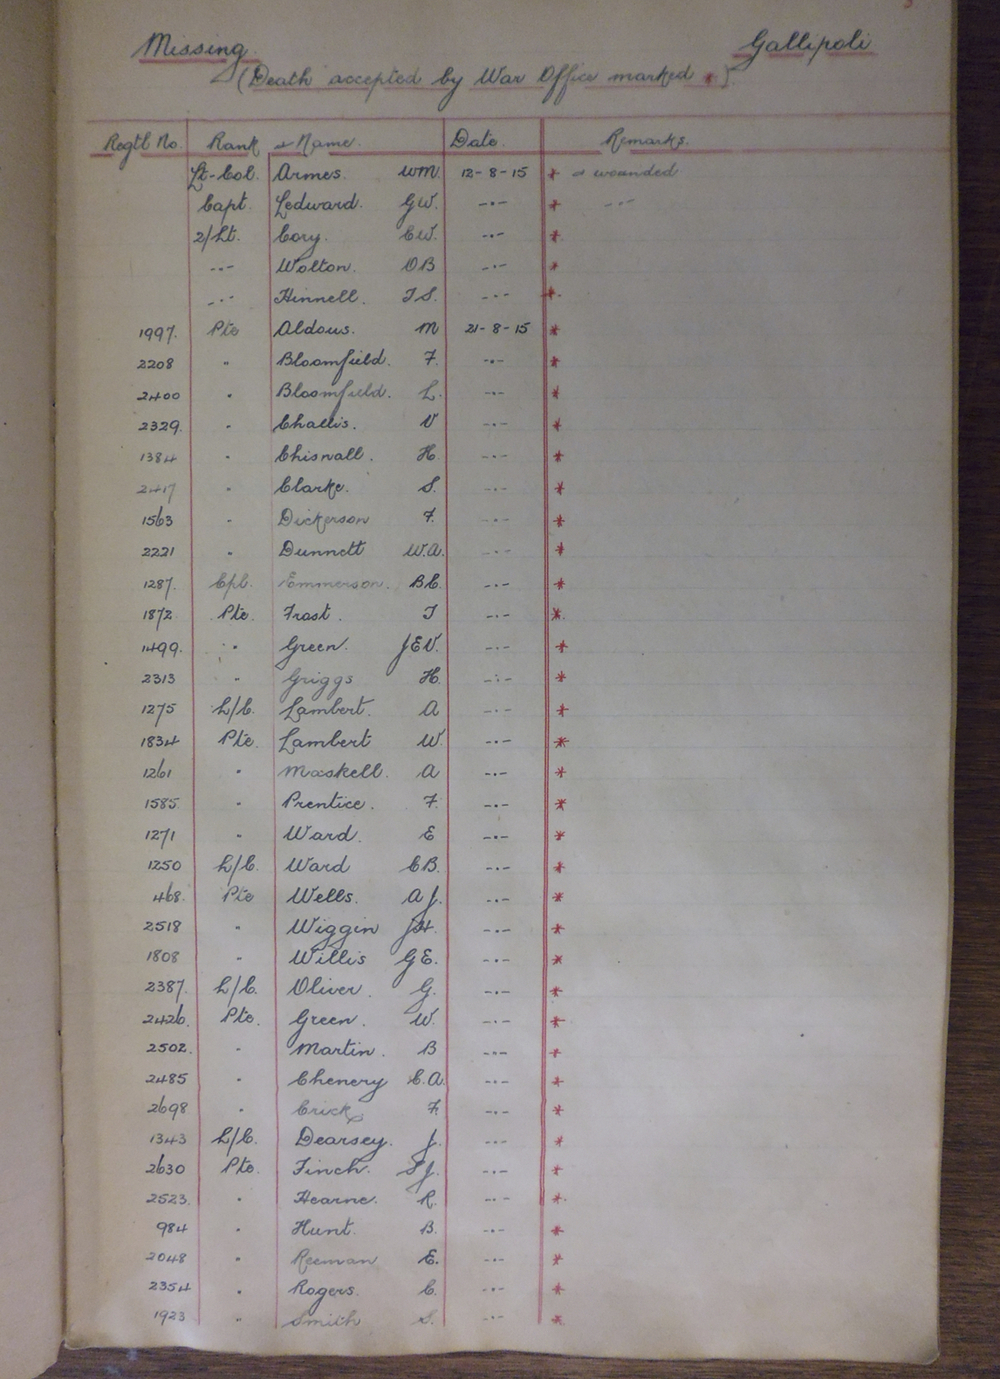 5th Suffolk Casualty Book GB554 H2 1 page 4 only.jpg